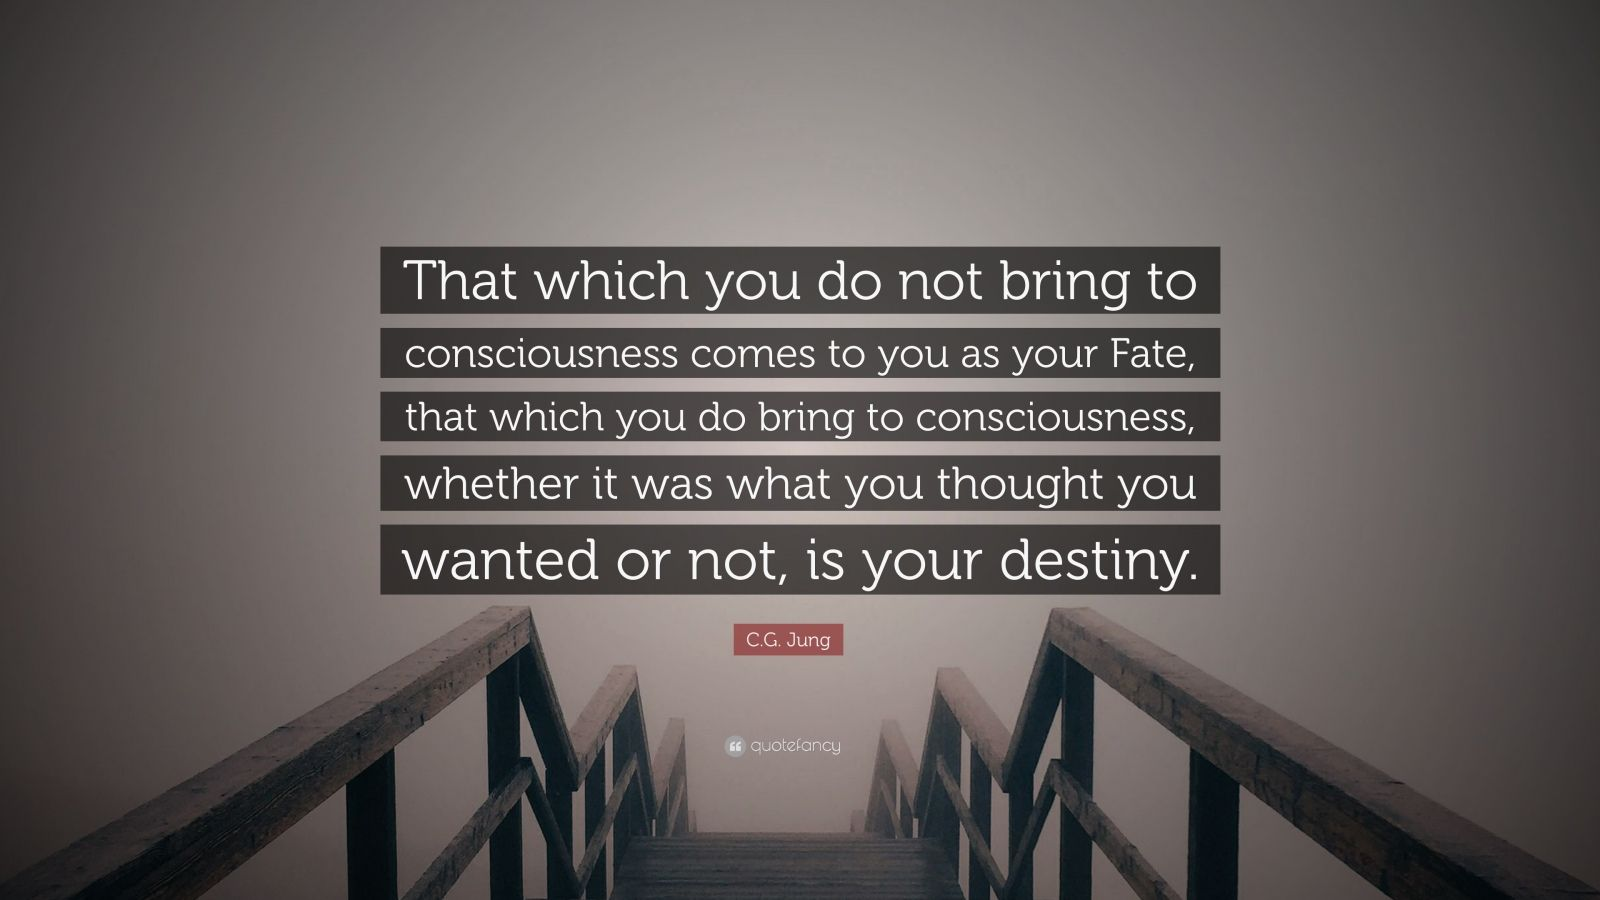 """C.G. Jung Quote: """"That which you do not bring to consciousness comes to you as your Fate, that which you do bring to consciousness, whether it was what you thought you wanted or not, is your destiny."""""""